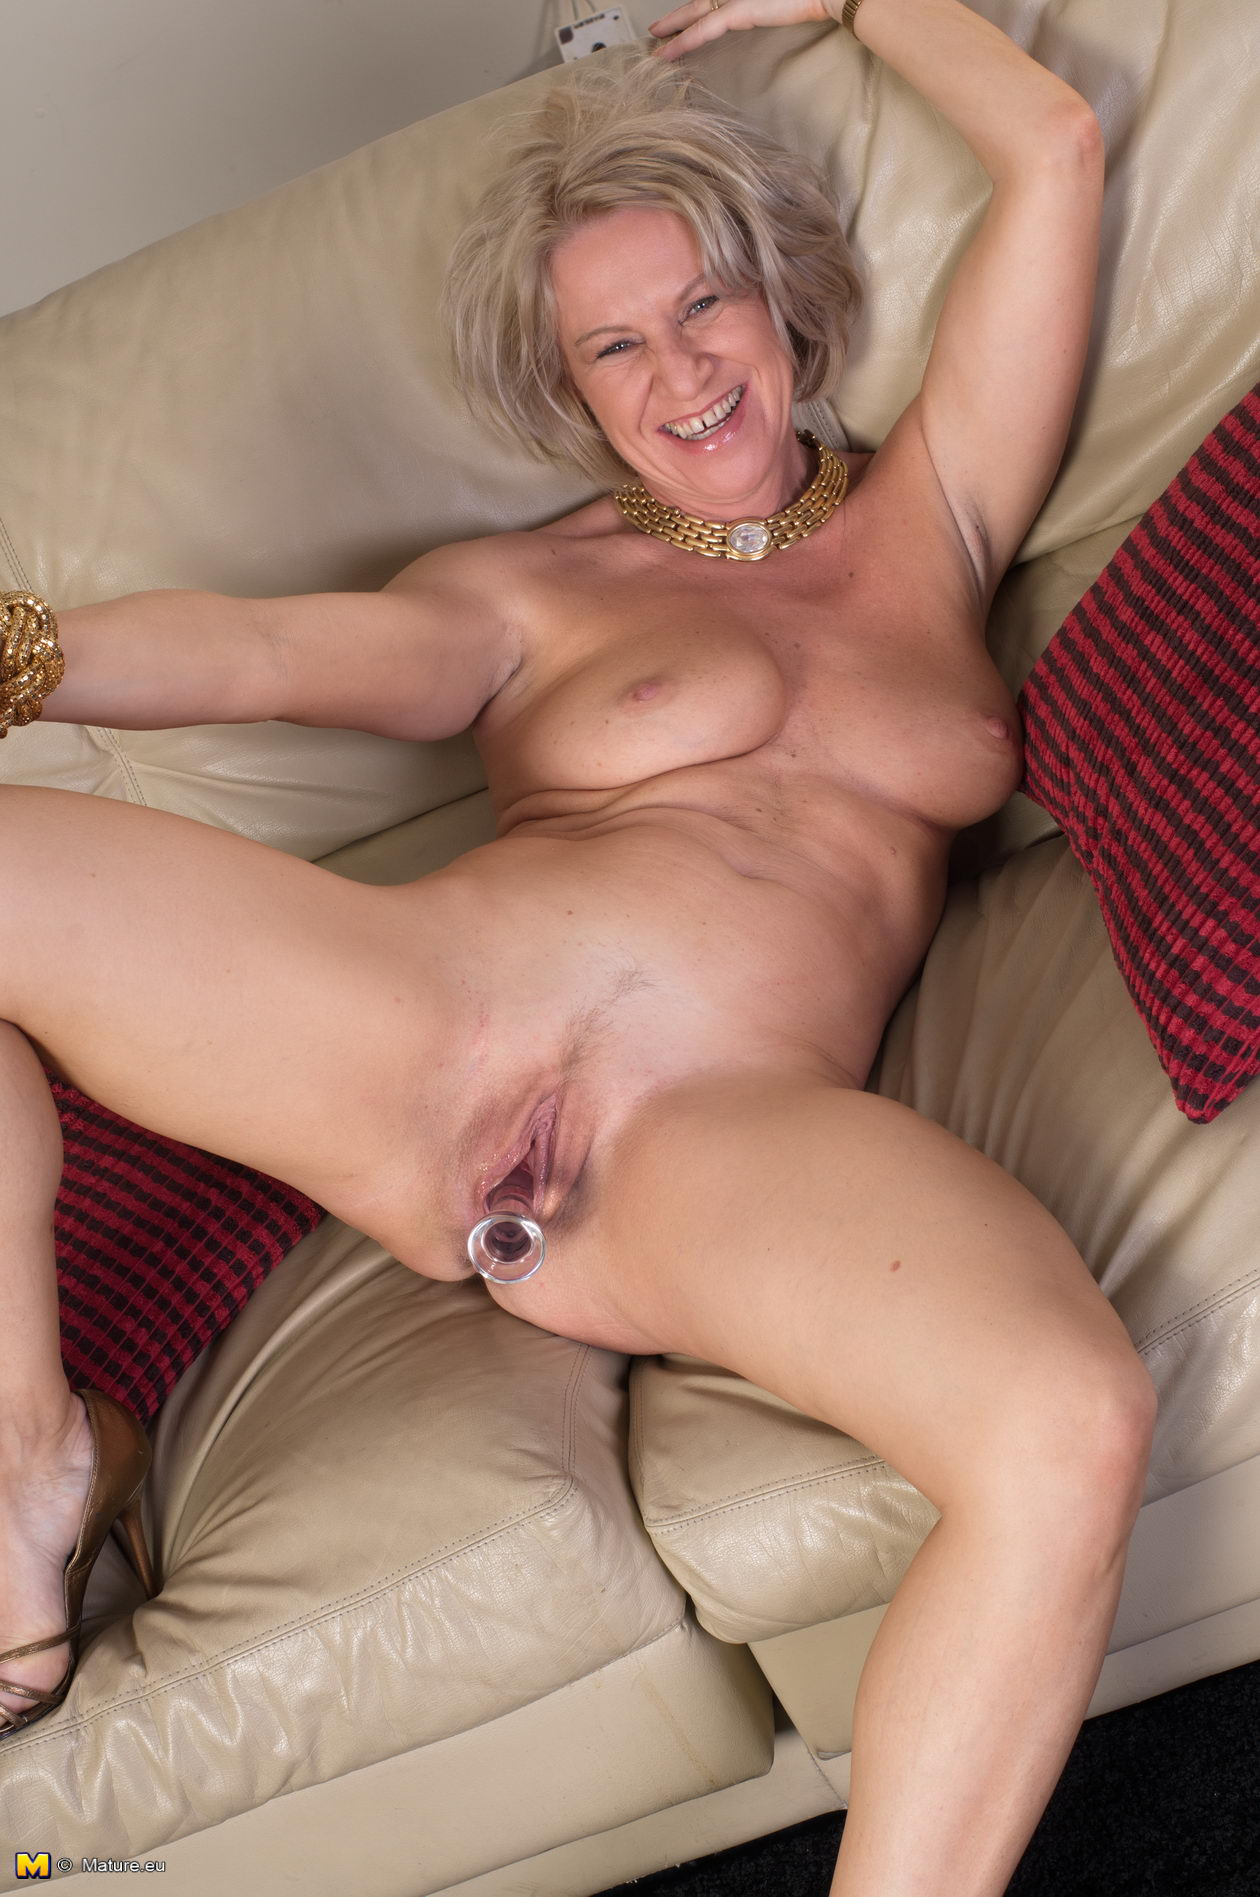 Older women nudist fucking